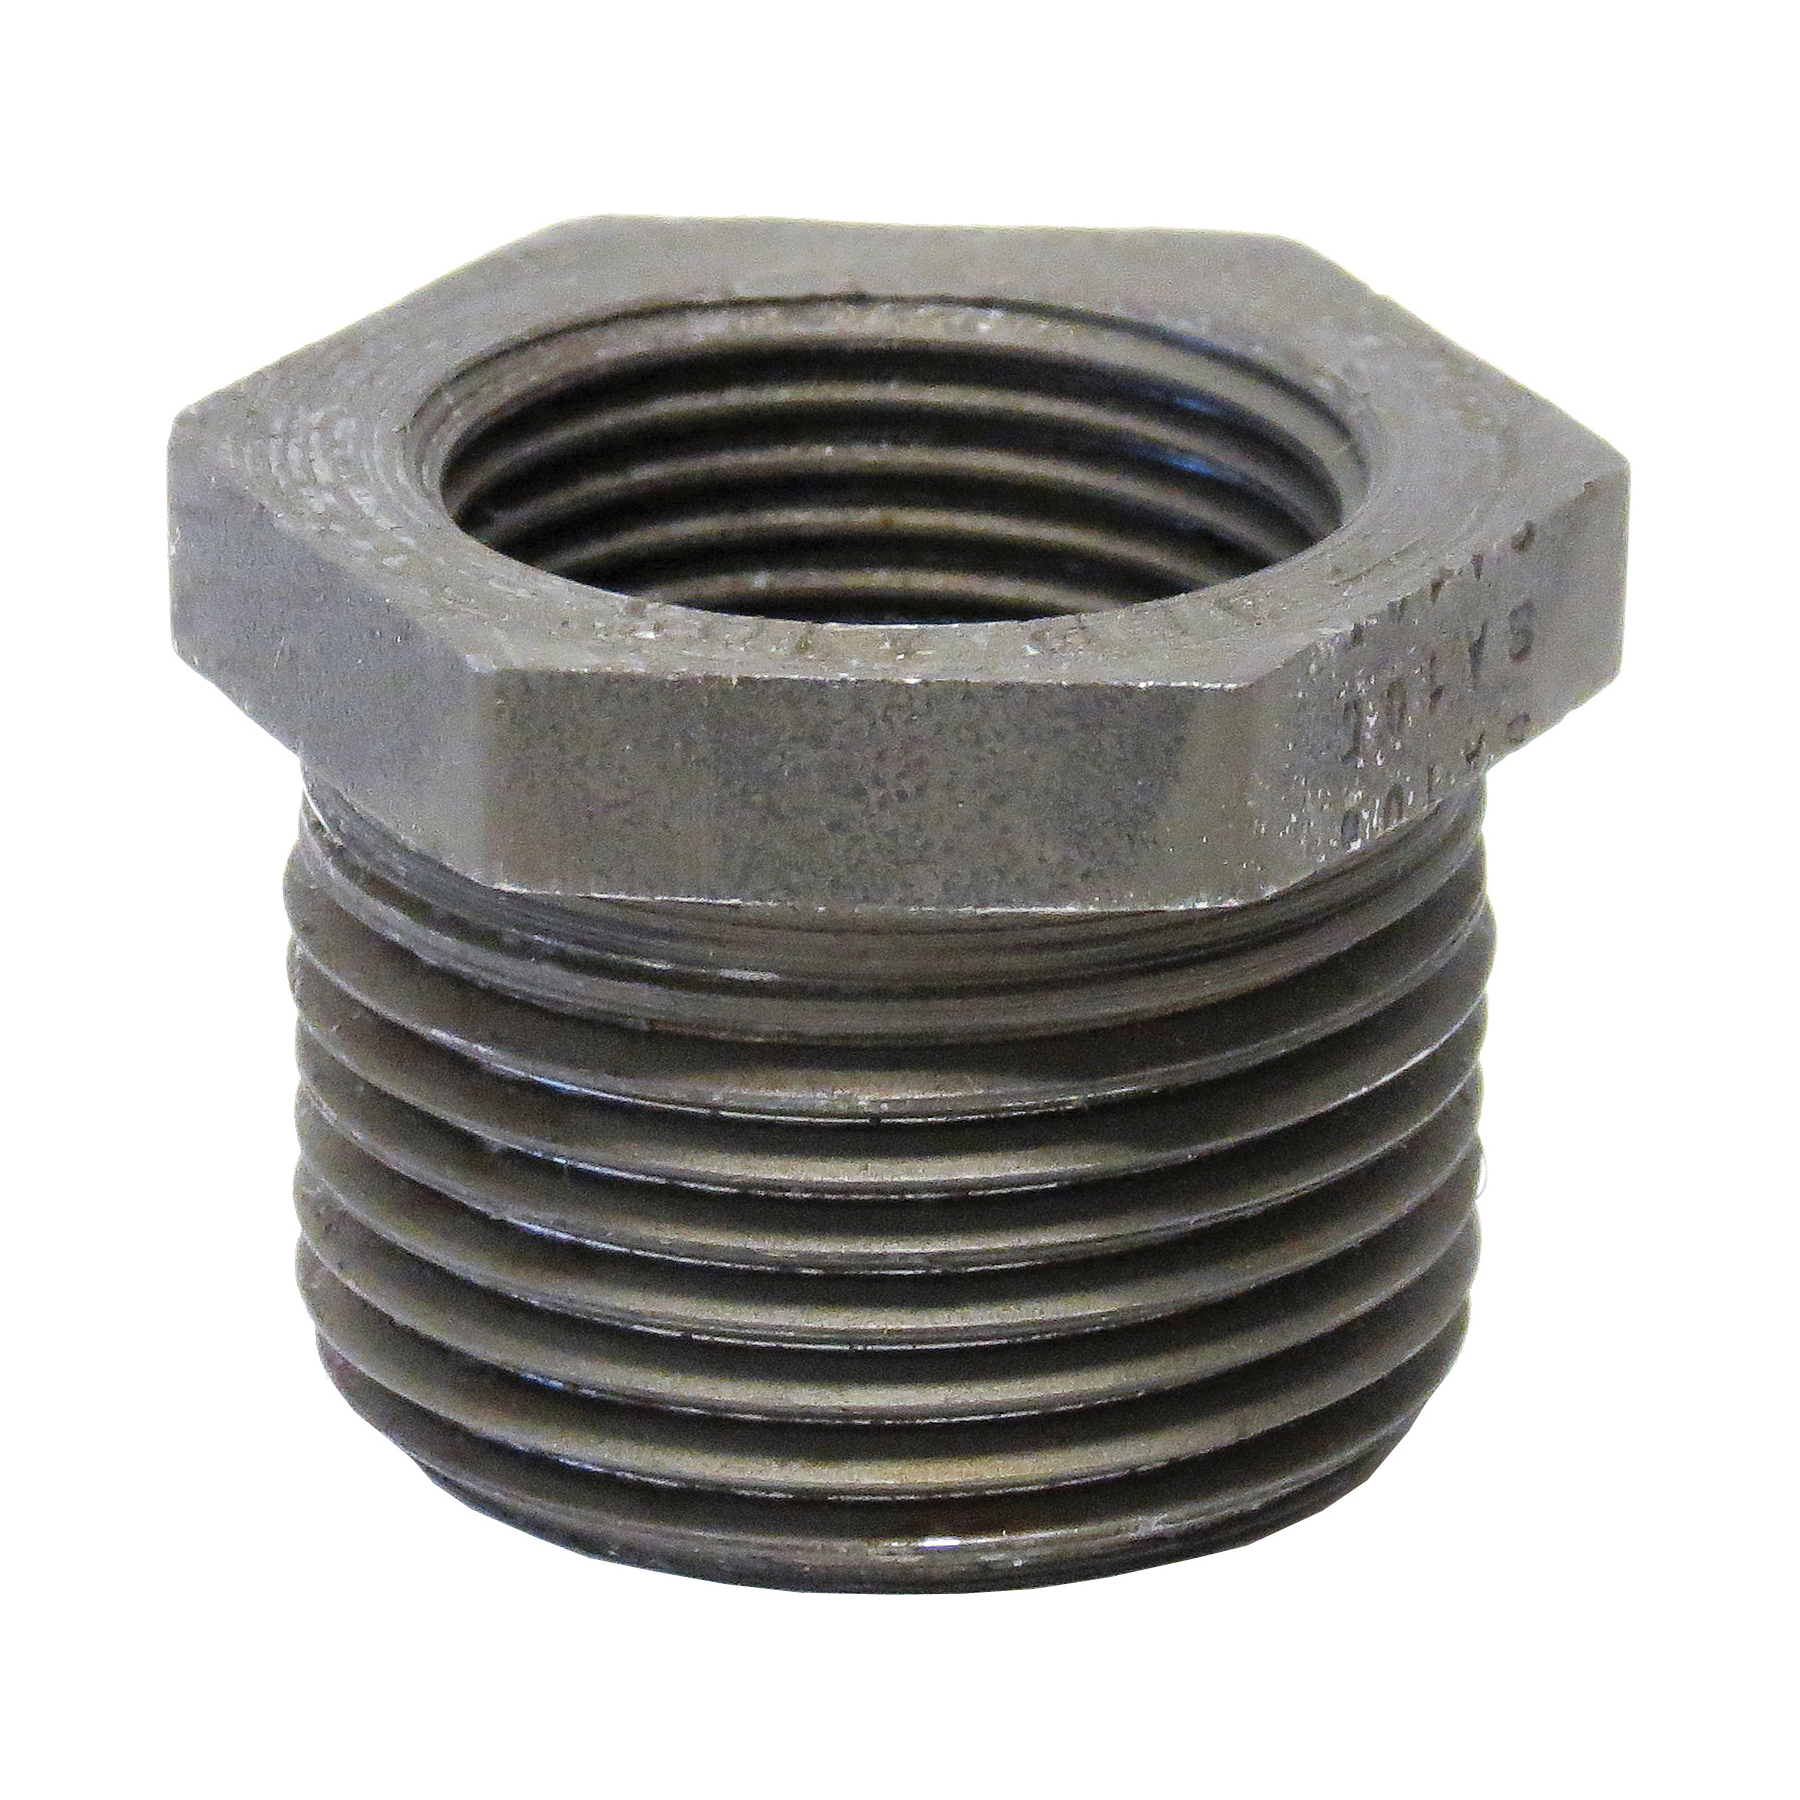 Anvil® 0361330103 FIG 2139 High Pressure Hex Head Bushing, 3/8 x 1/8 in, Steel, Domestic